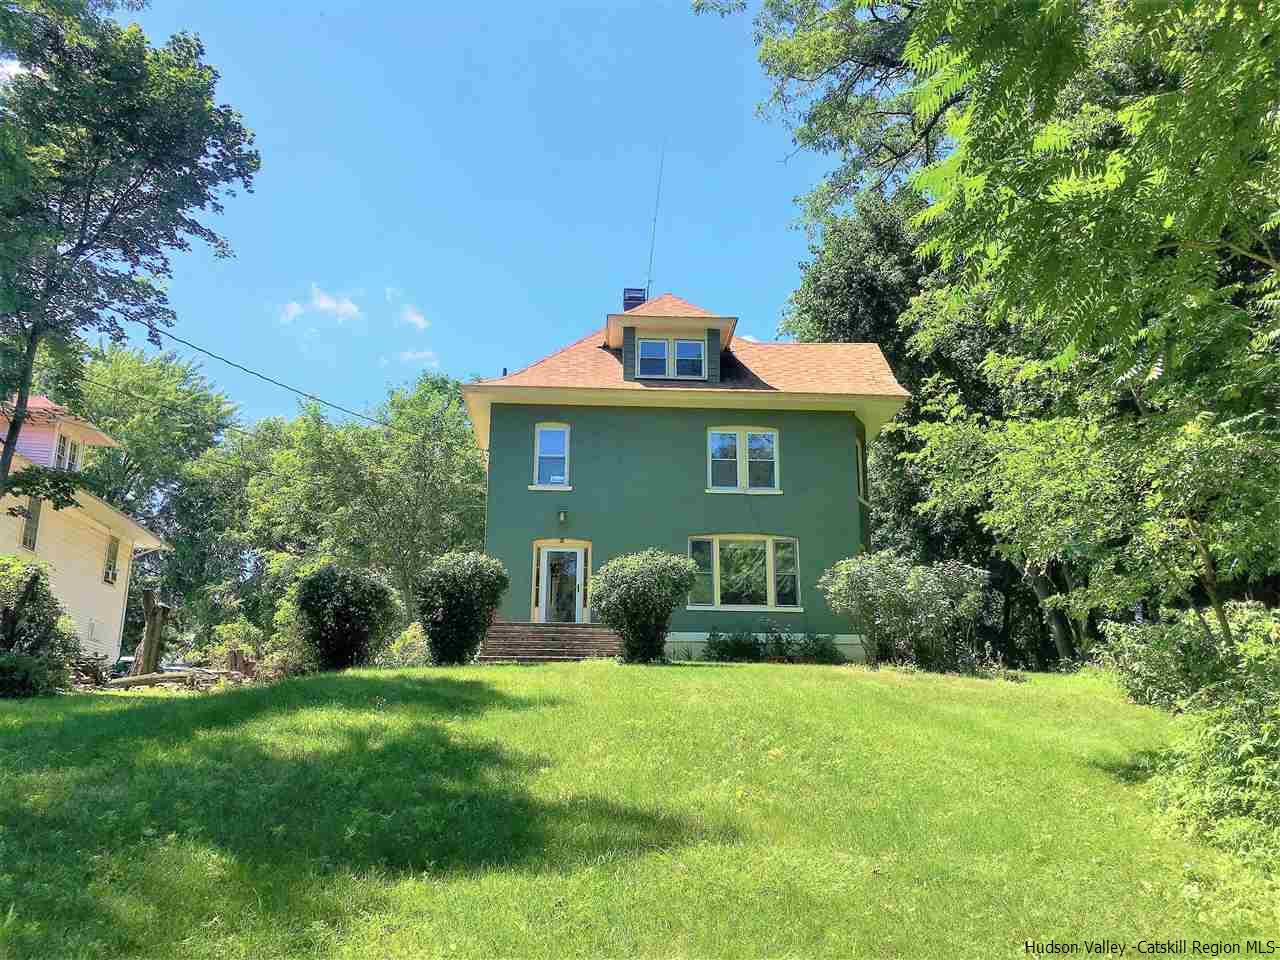 Single Family Home for Sale at 59 Orchard Street 59 Orchard Street Kingston, New York 12401 United States